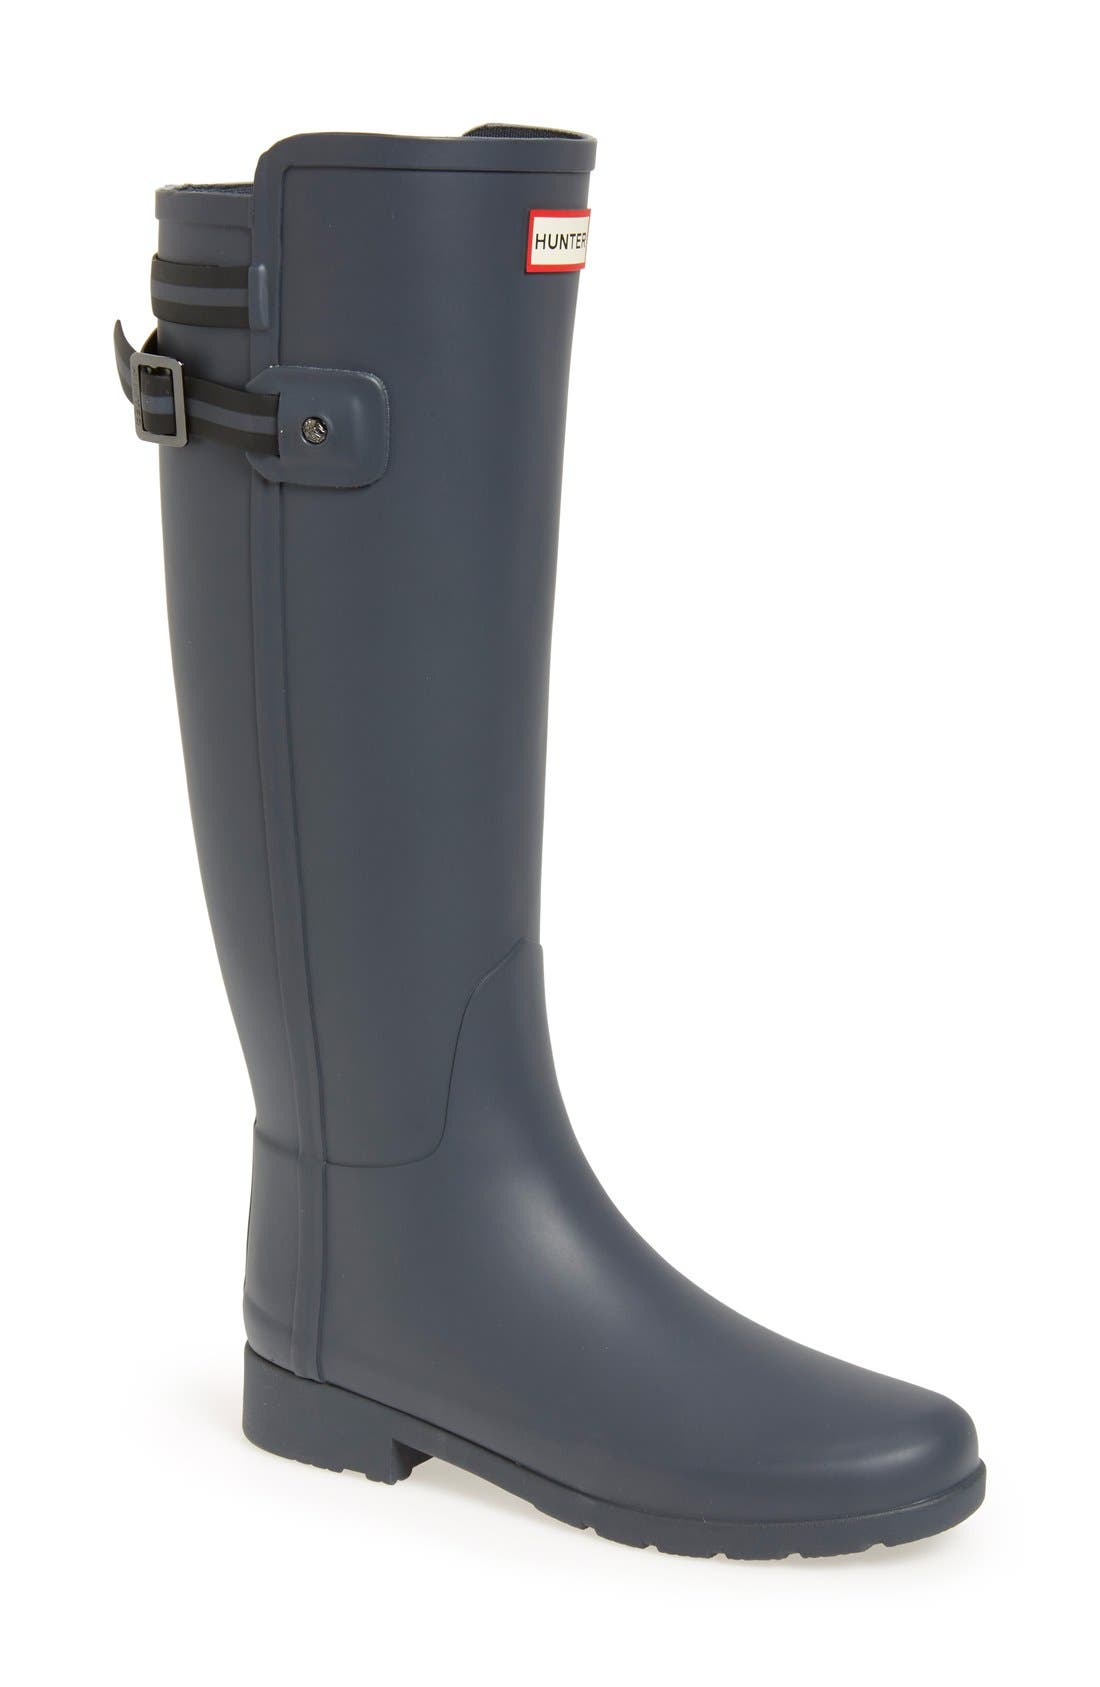 Alternate Image 1 Selected - Hunter 'Original Refined' Rain Boot (Women)